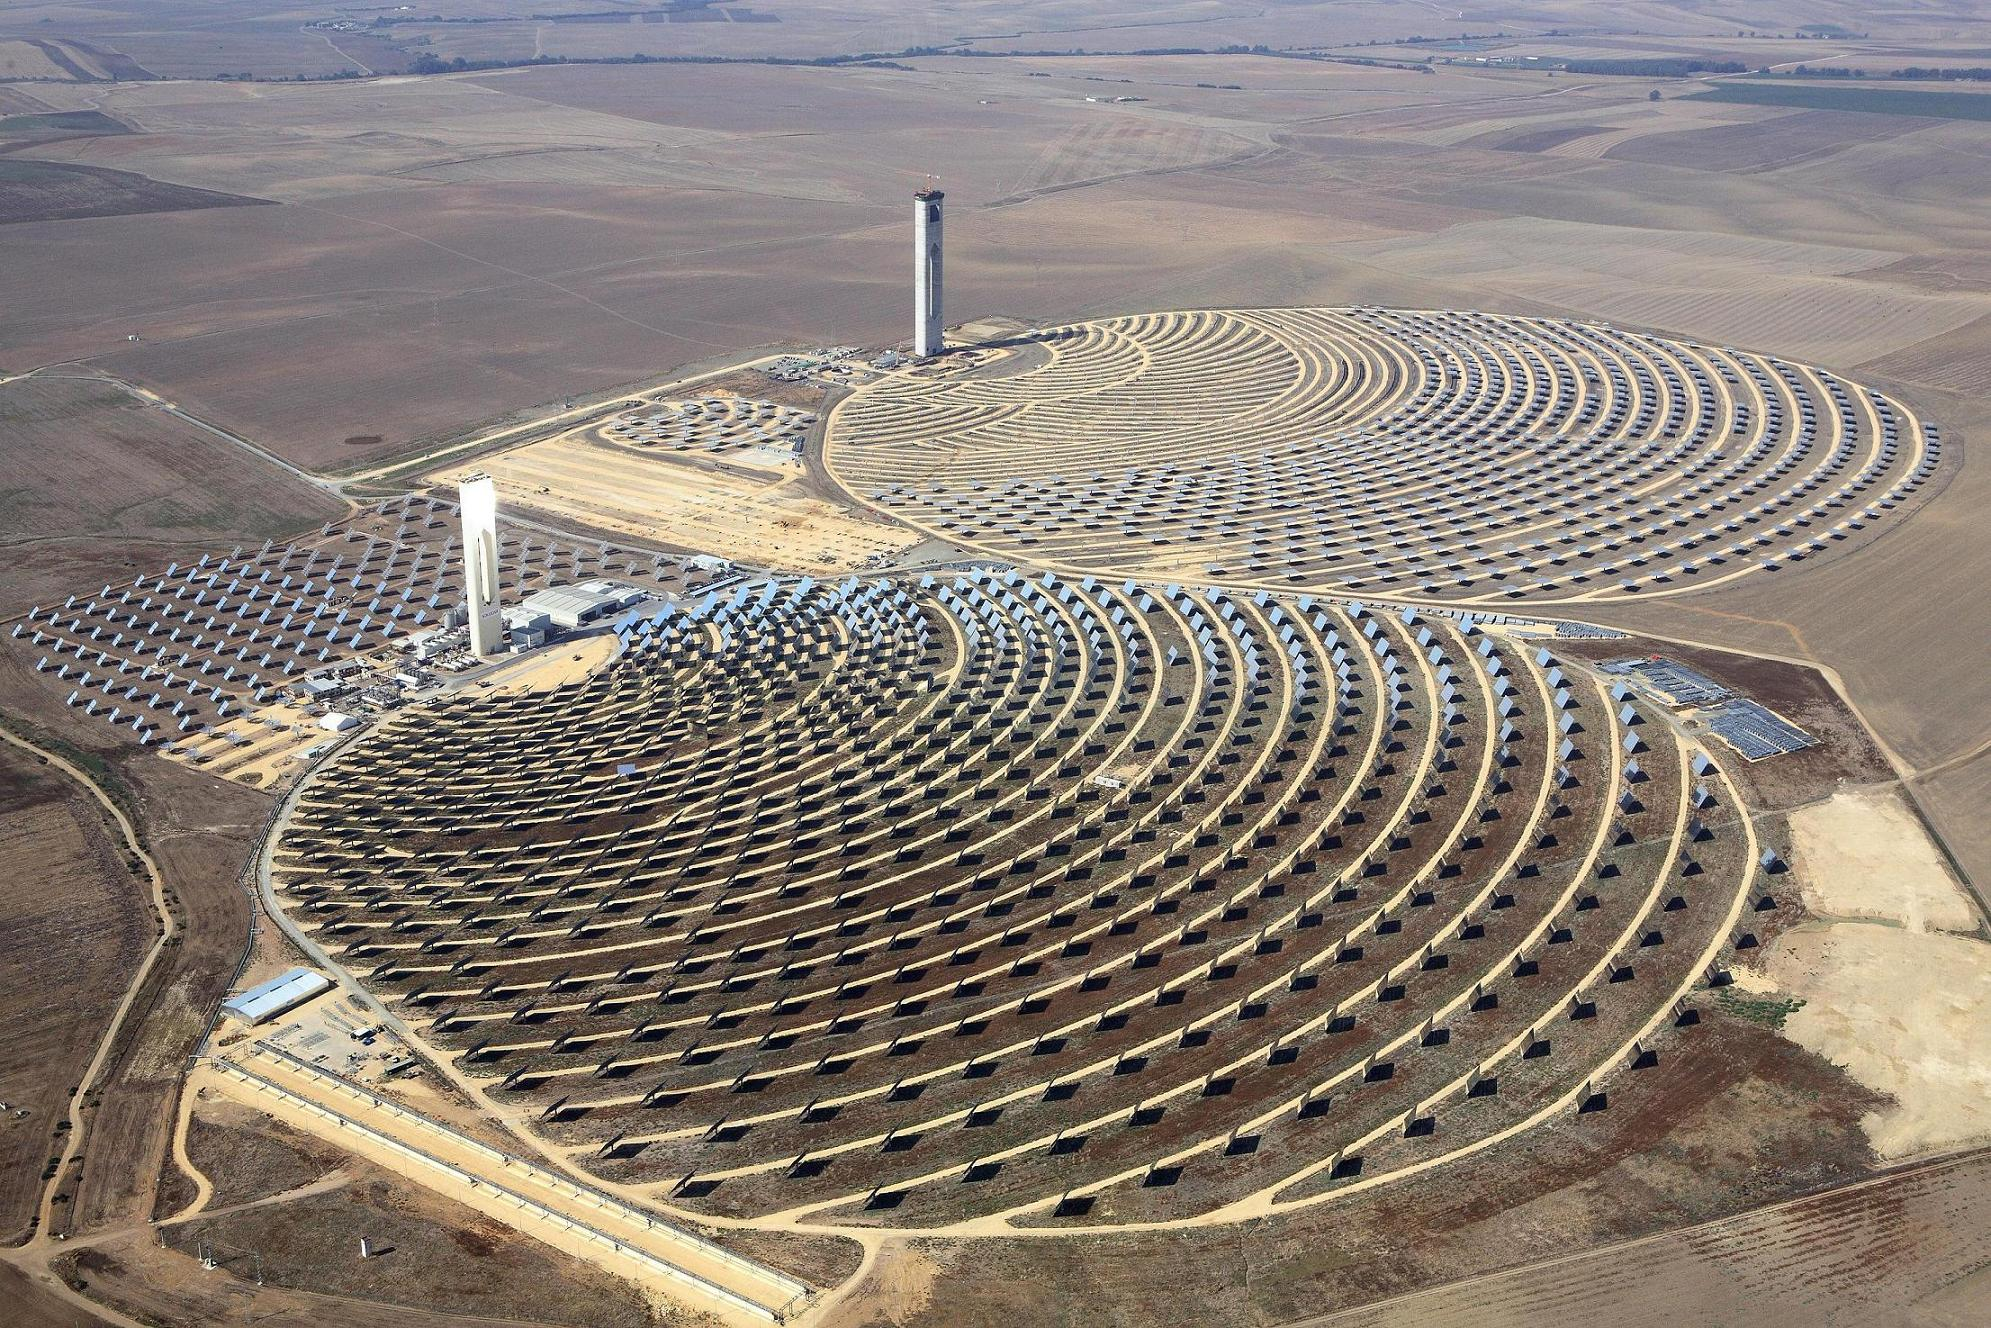 Solar Thermal Power Concentrating Solar Fail – Just Look At